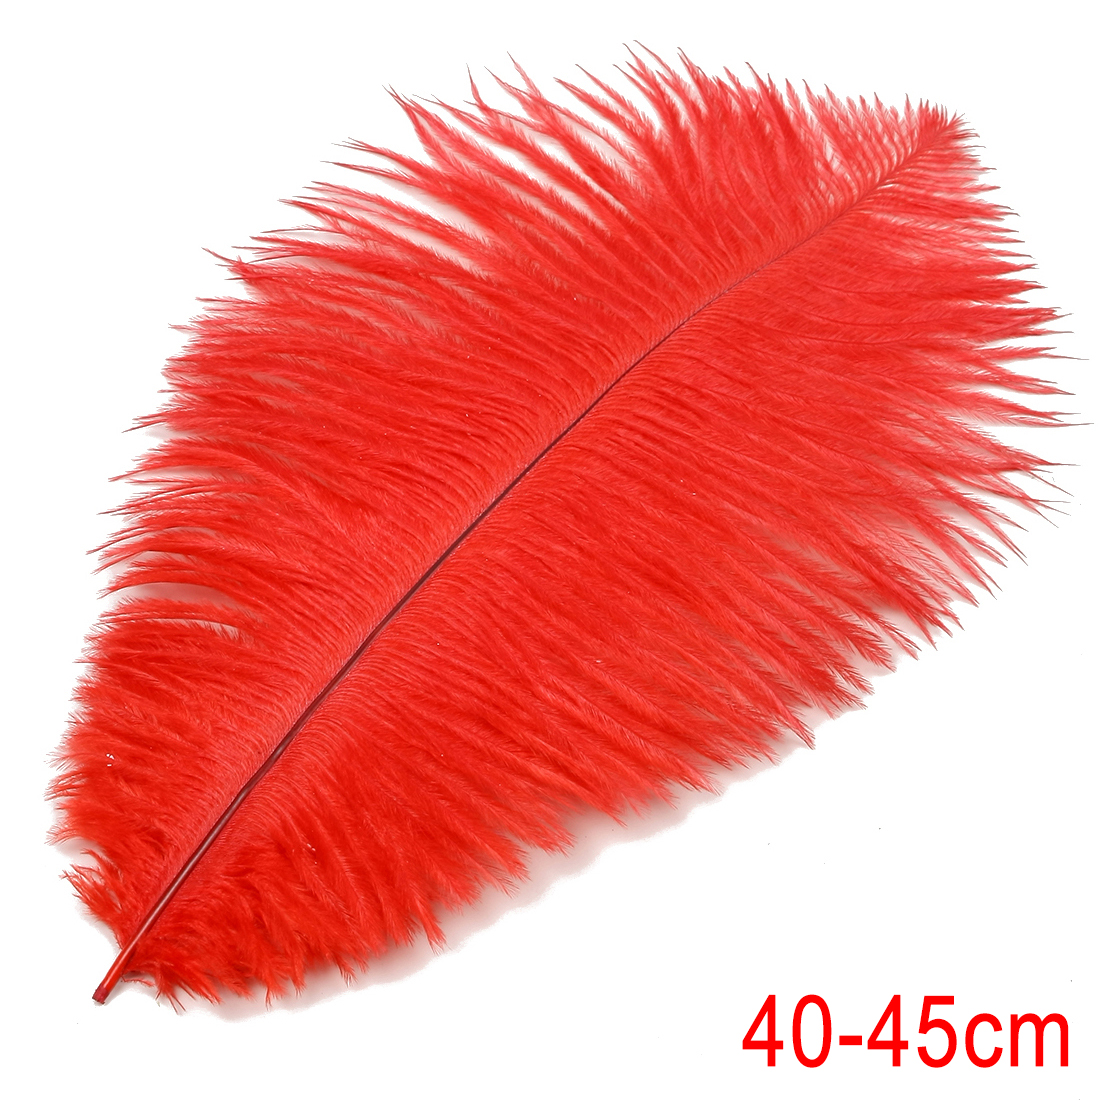 16-18inch / 40-45cm Ostrich Feather for Wedding Party Decoration Red